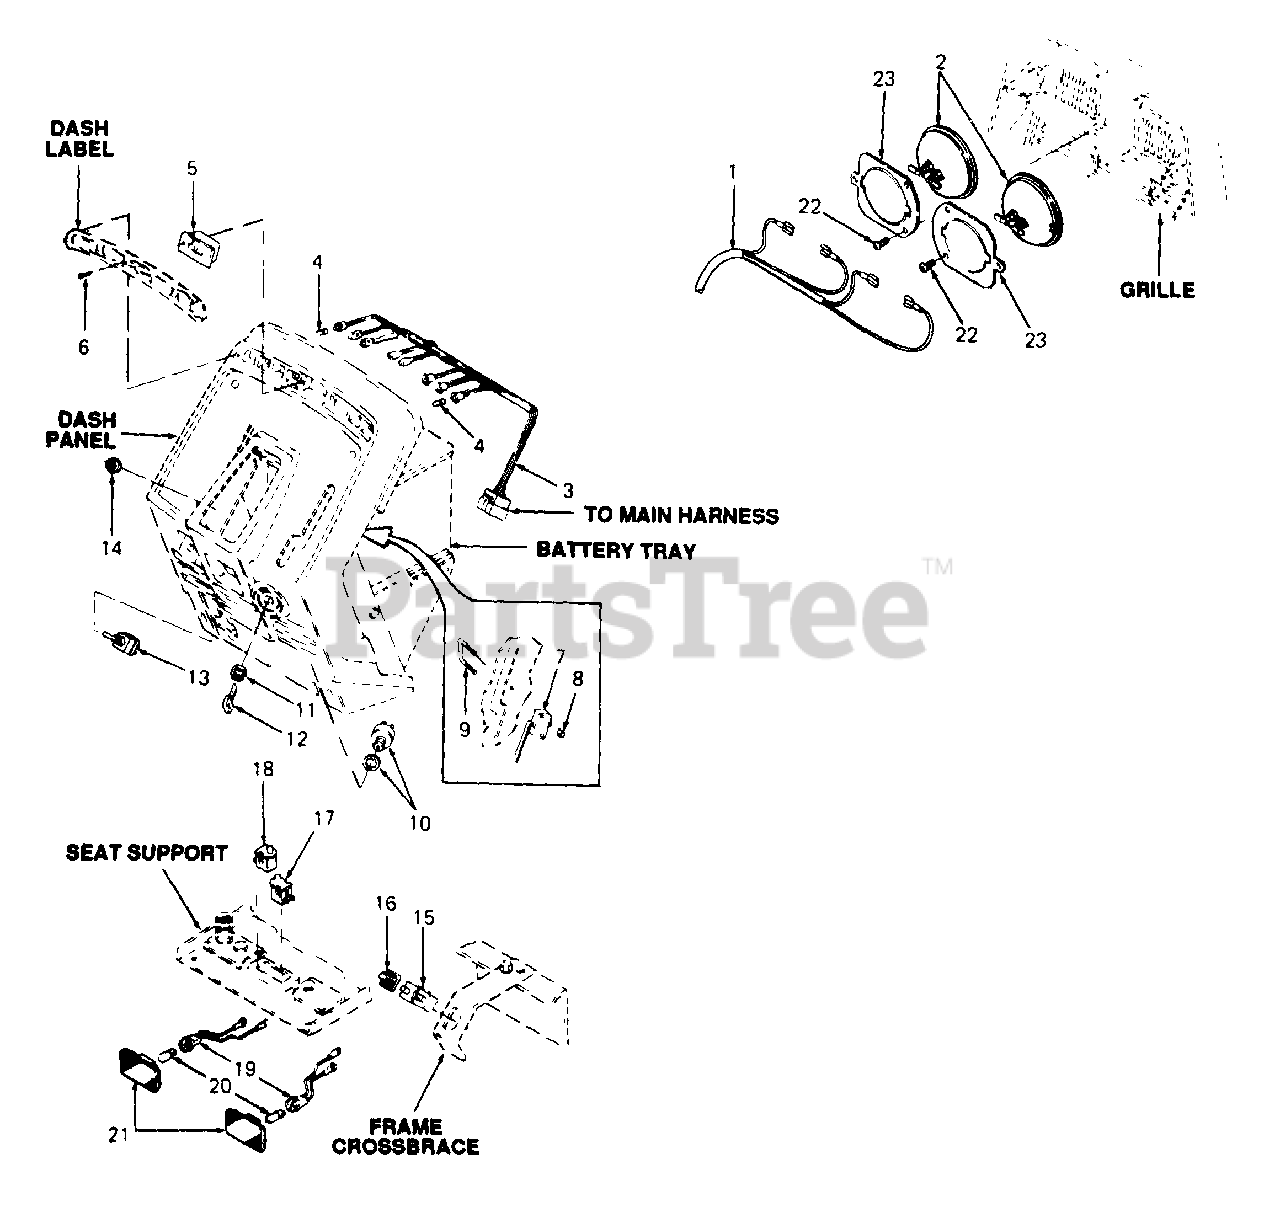 Cub Cadet Parts on the Electrical Diagram for 1641 (146